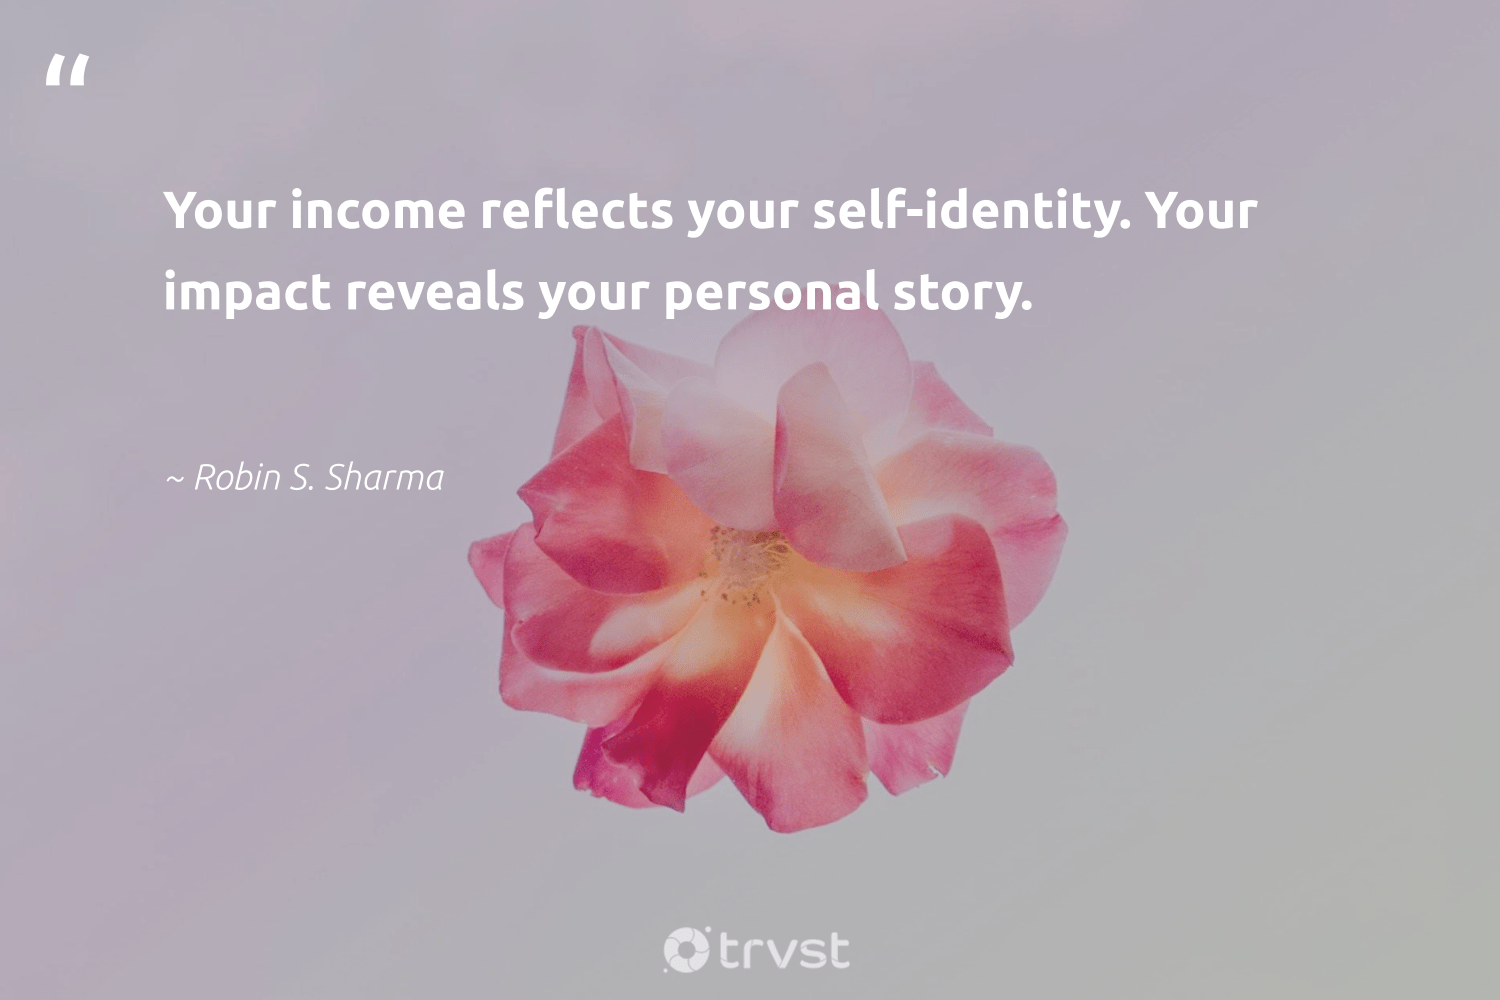 """Your income reflects your self-identity. Your impact reveals your personal story.""  - Robin S. Sharma #trvst #quotes #impact #weareallone #takeaction #giveback #dogood #socialchange #planetearthfirst #betterplanet #ecoconscious #ethicalbusiness"